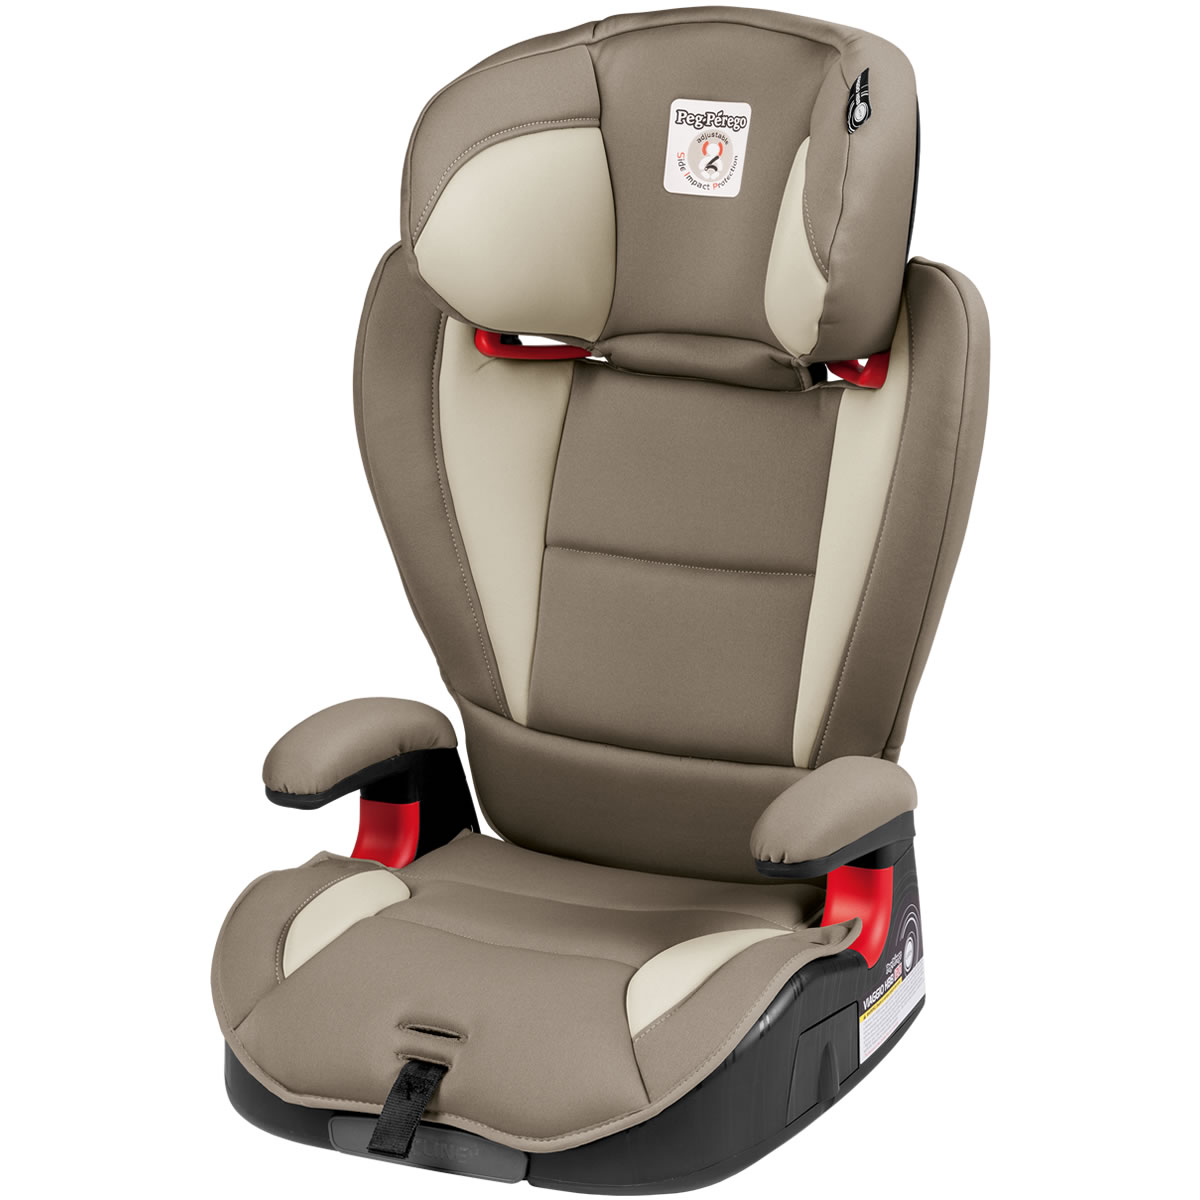 Peg-Perego HBB 120 High Back Booster Car Seat in Panama